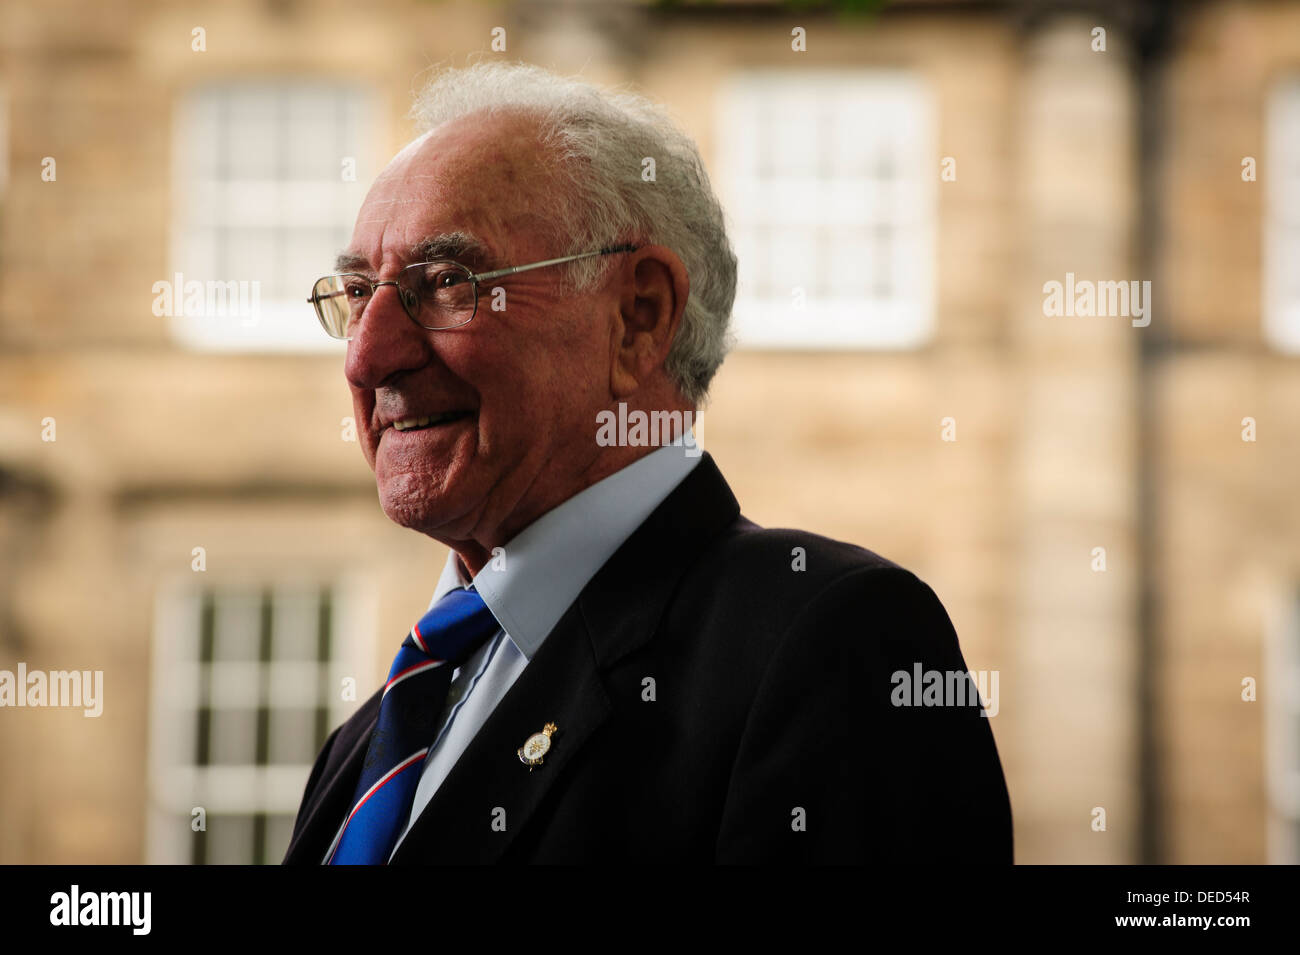 Harold Davis, Scottish former professional football player, attending at the international Book Festival 2013. - Stock Image